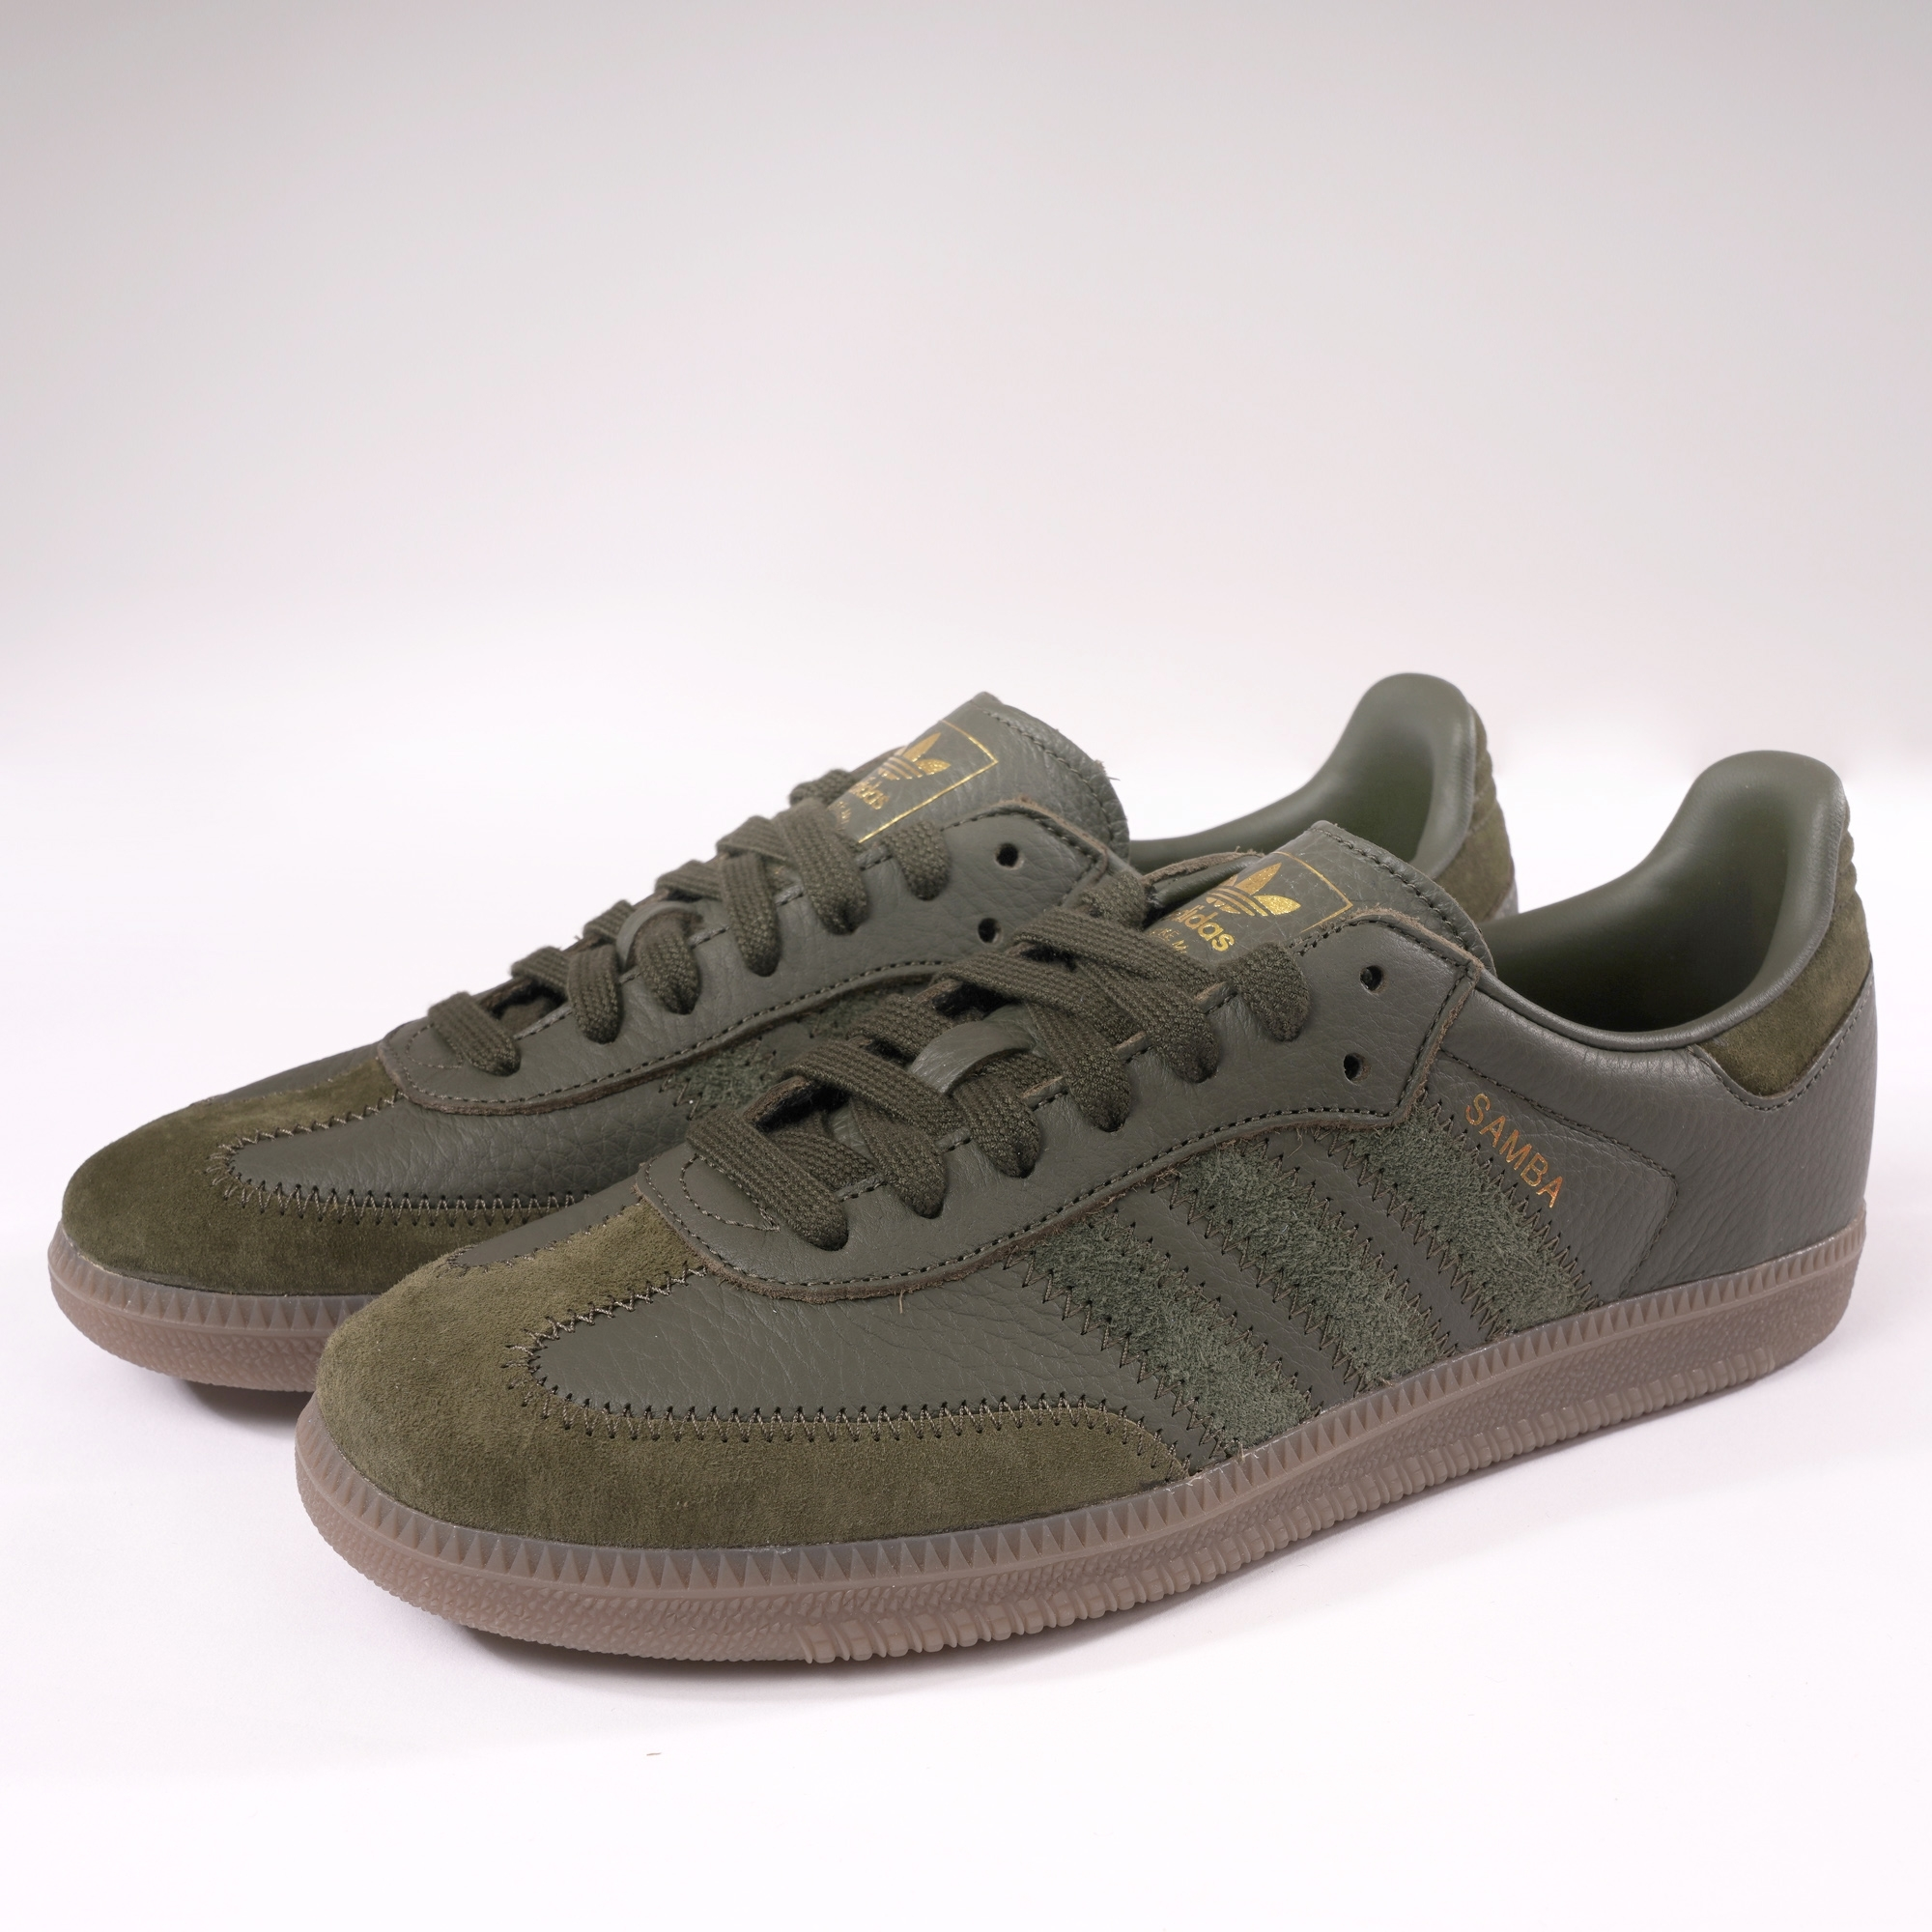 85f44e8f2f16a Adidas Originals Samba OG FT